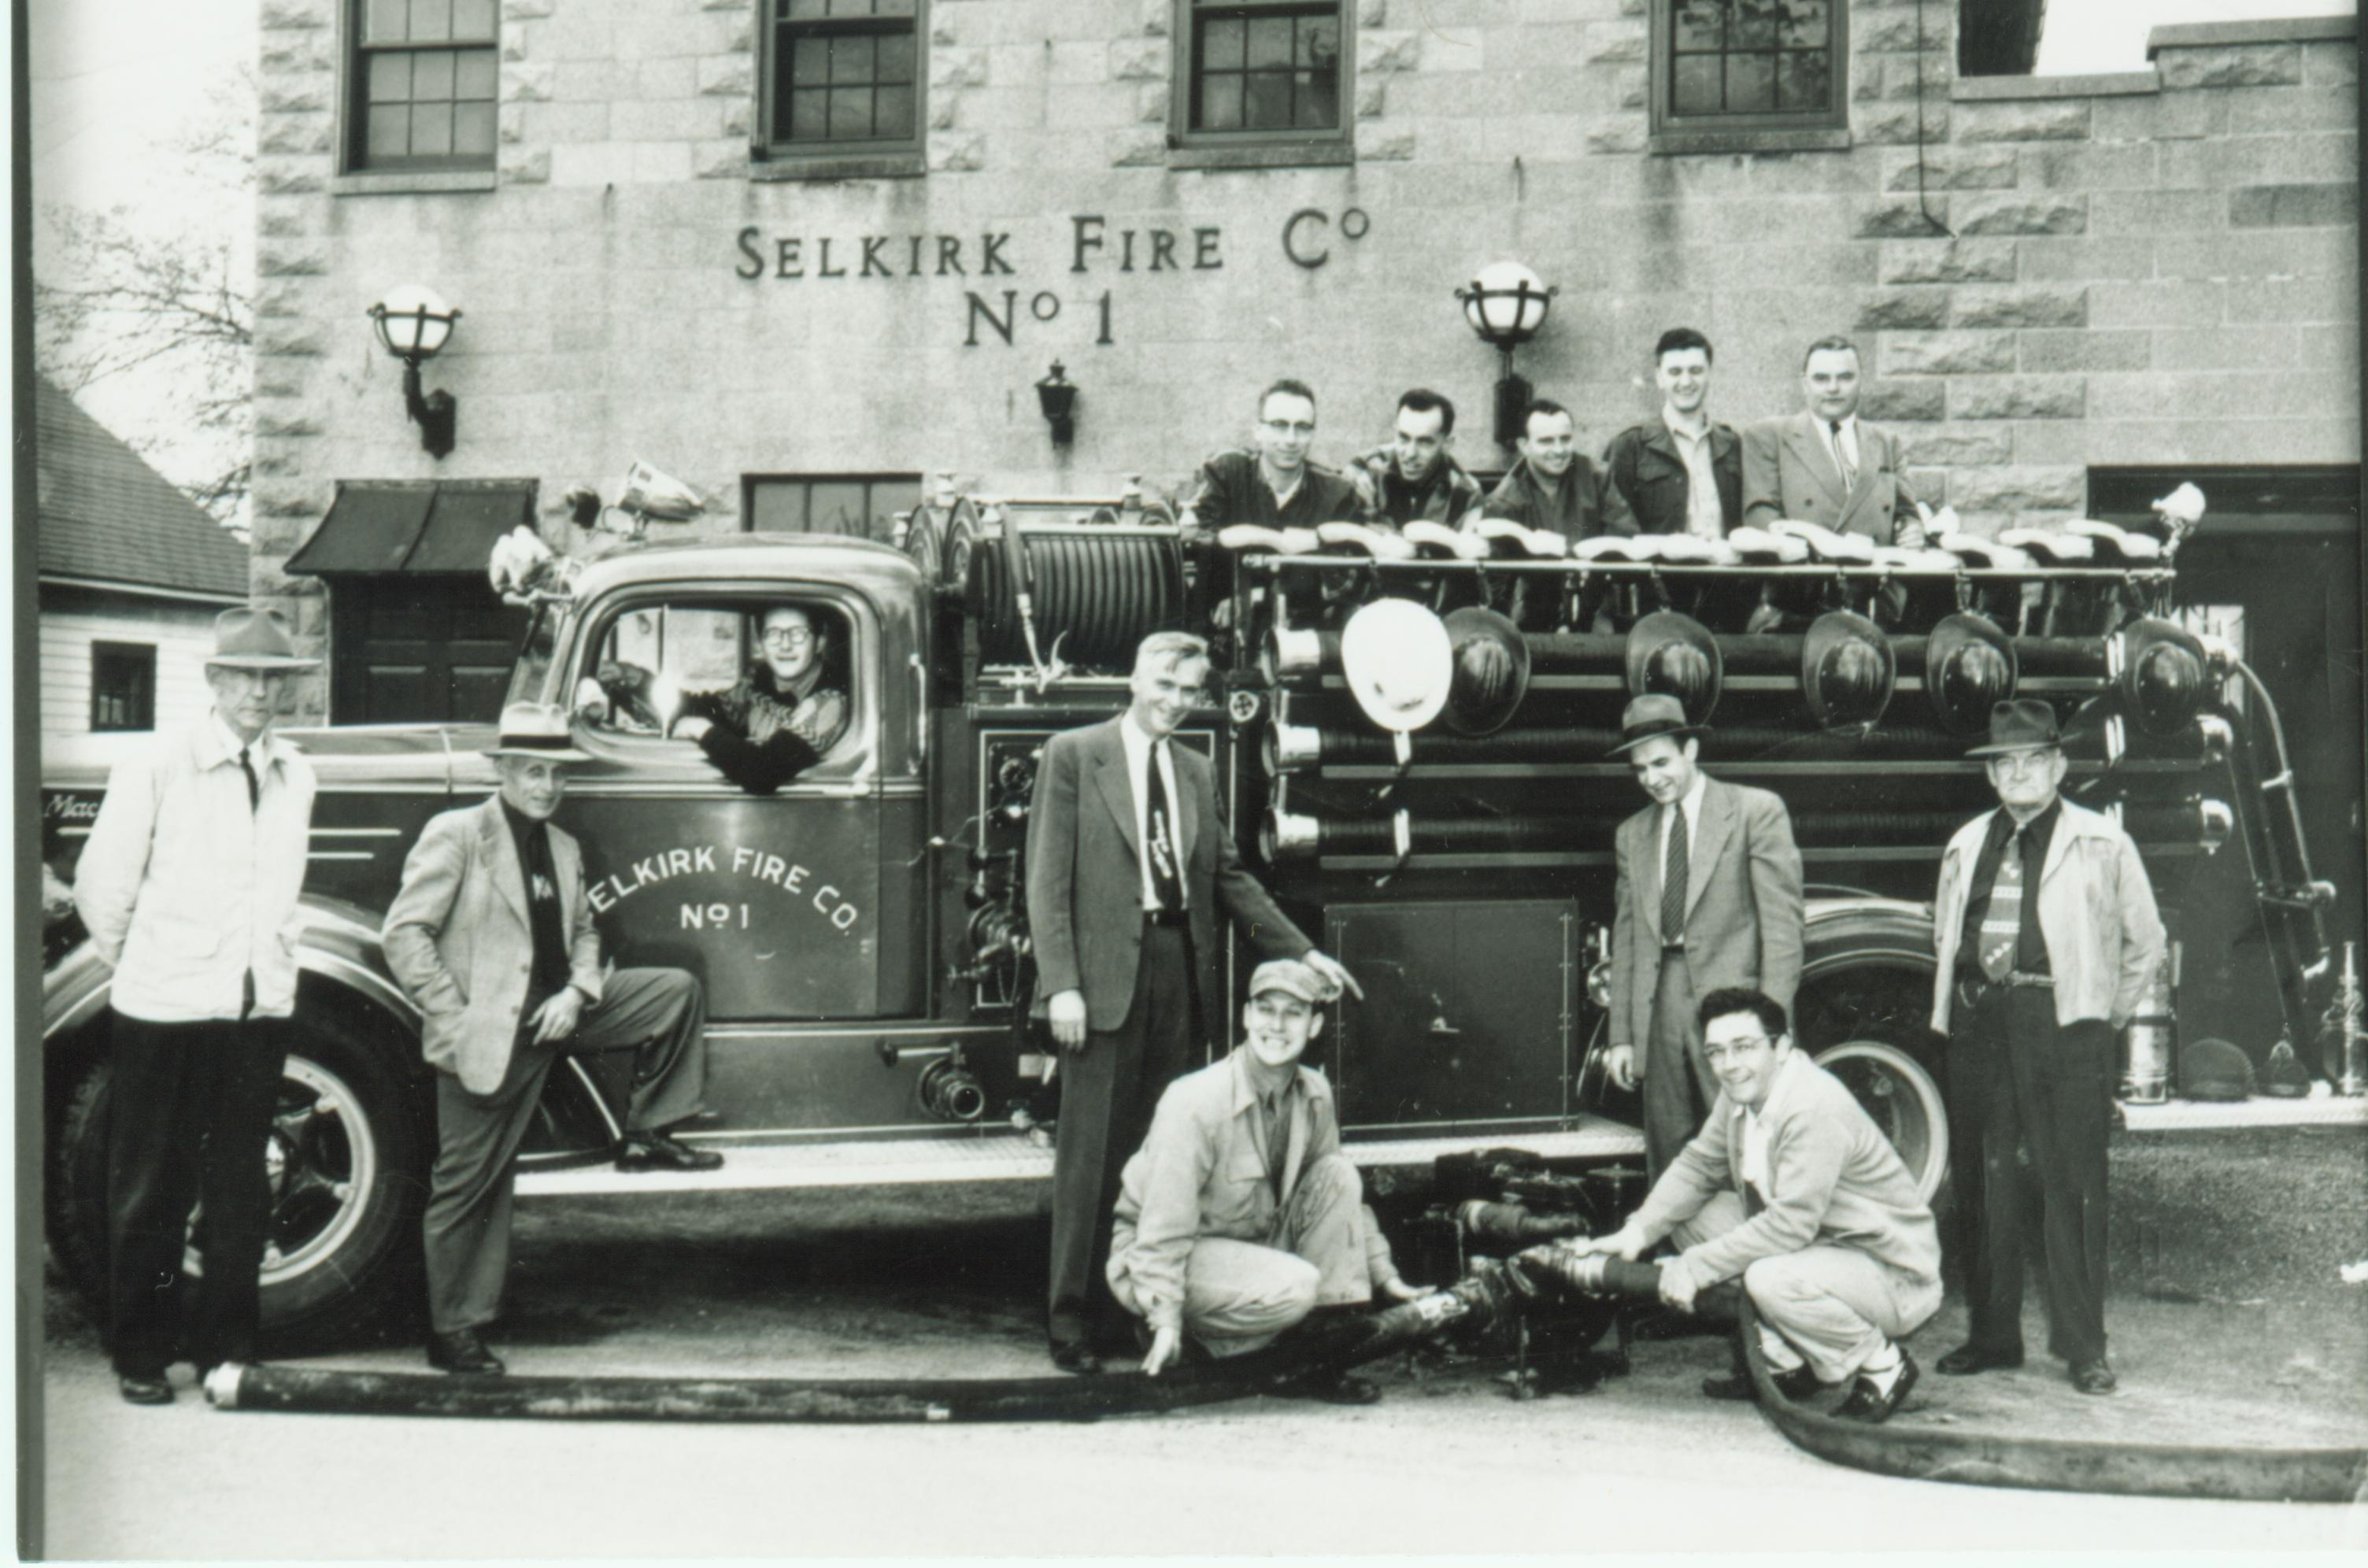 Selkirk Fire Company Number 1